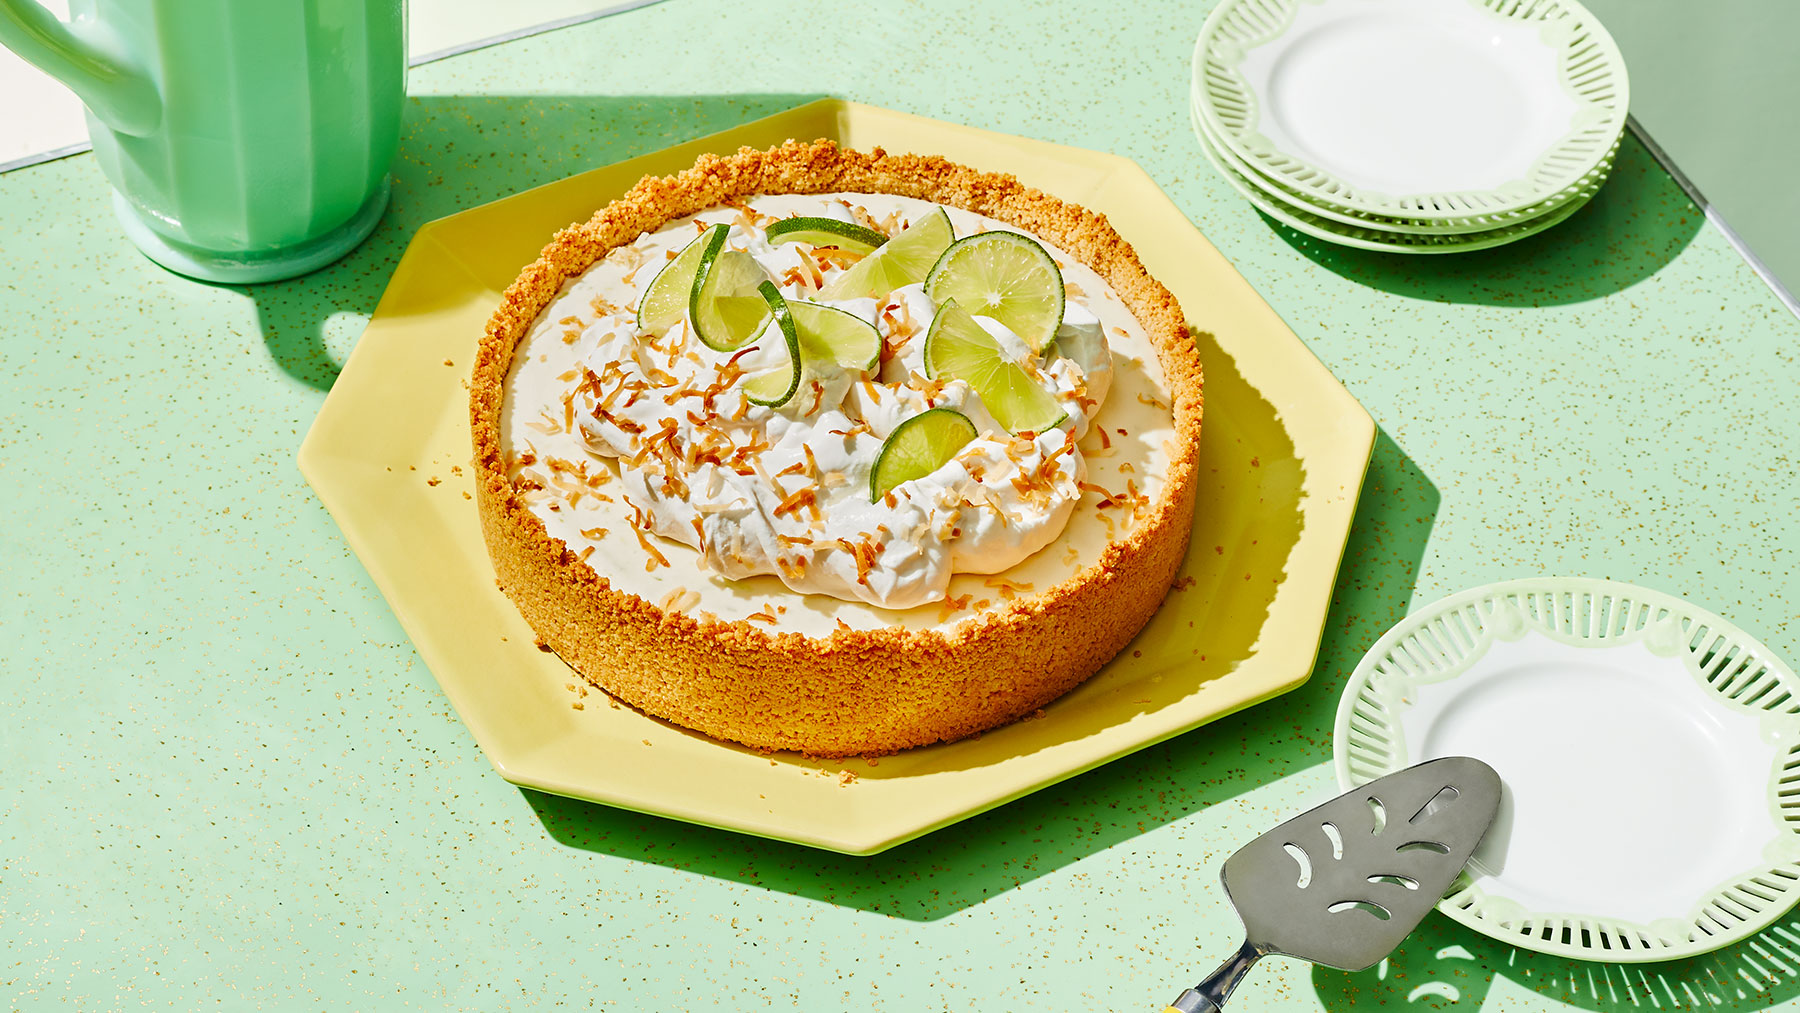 Toasted-Coconut Key Lime Pie Recipe